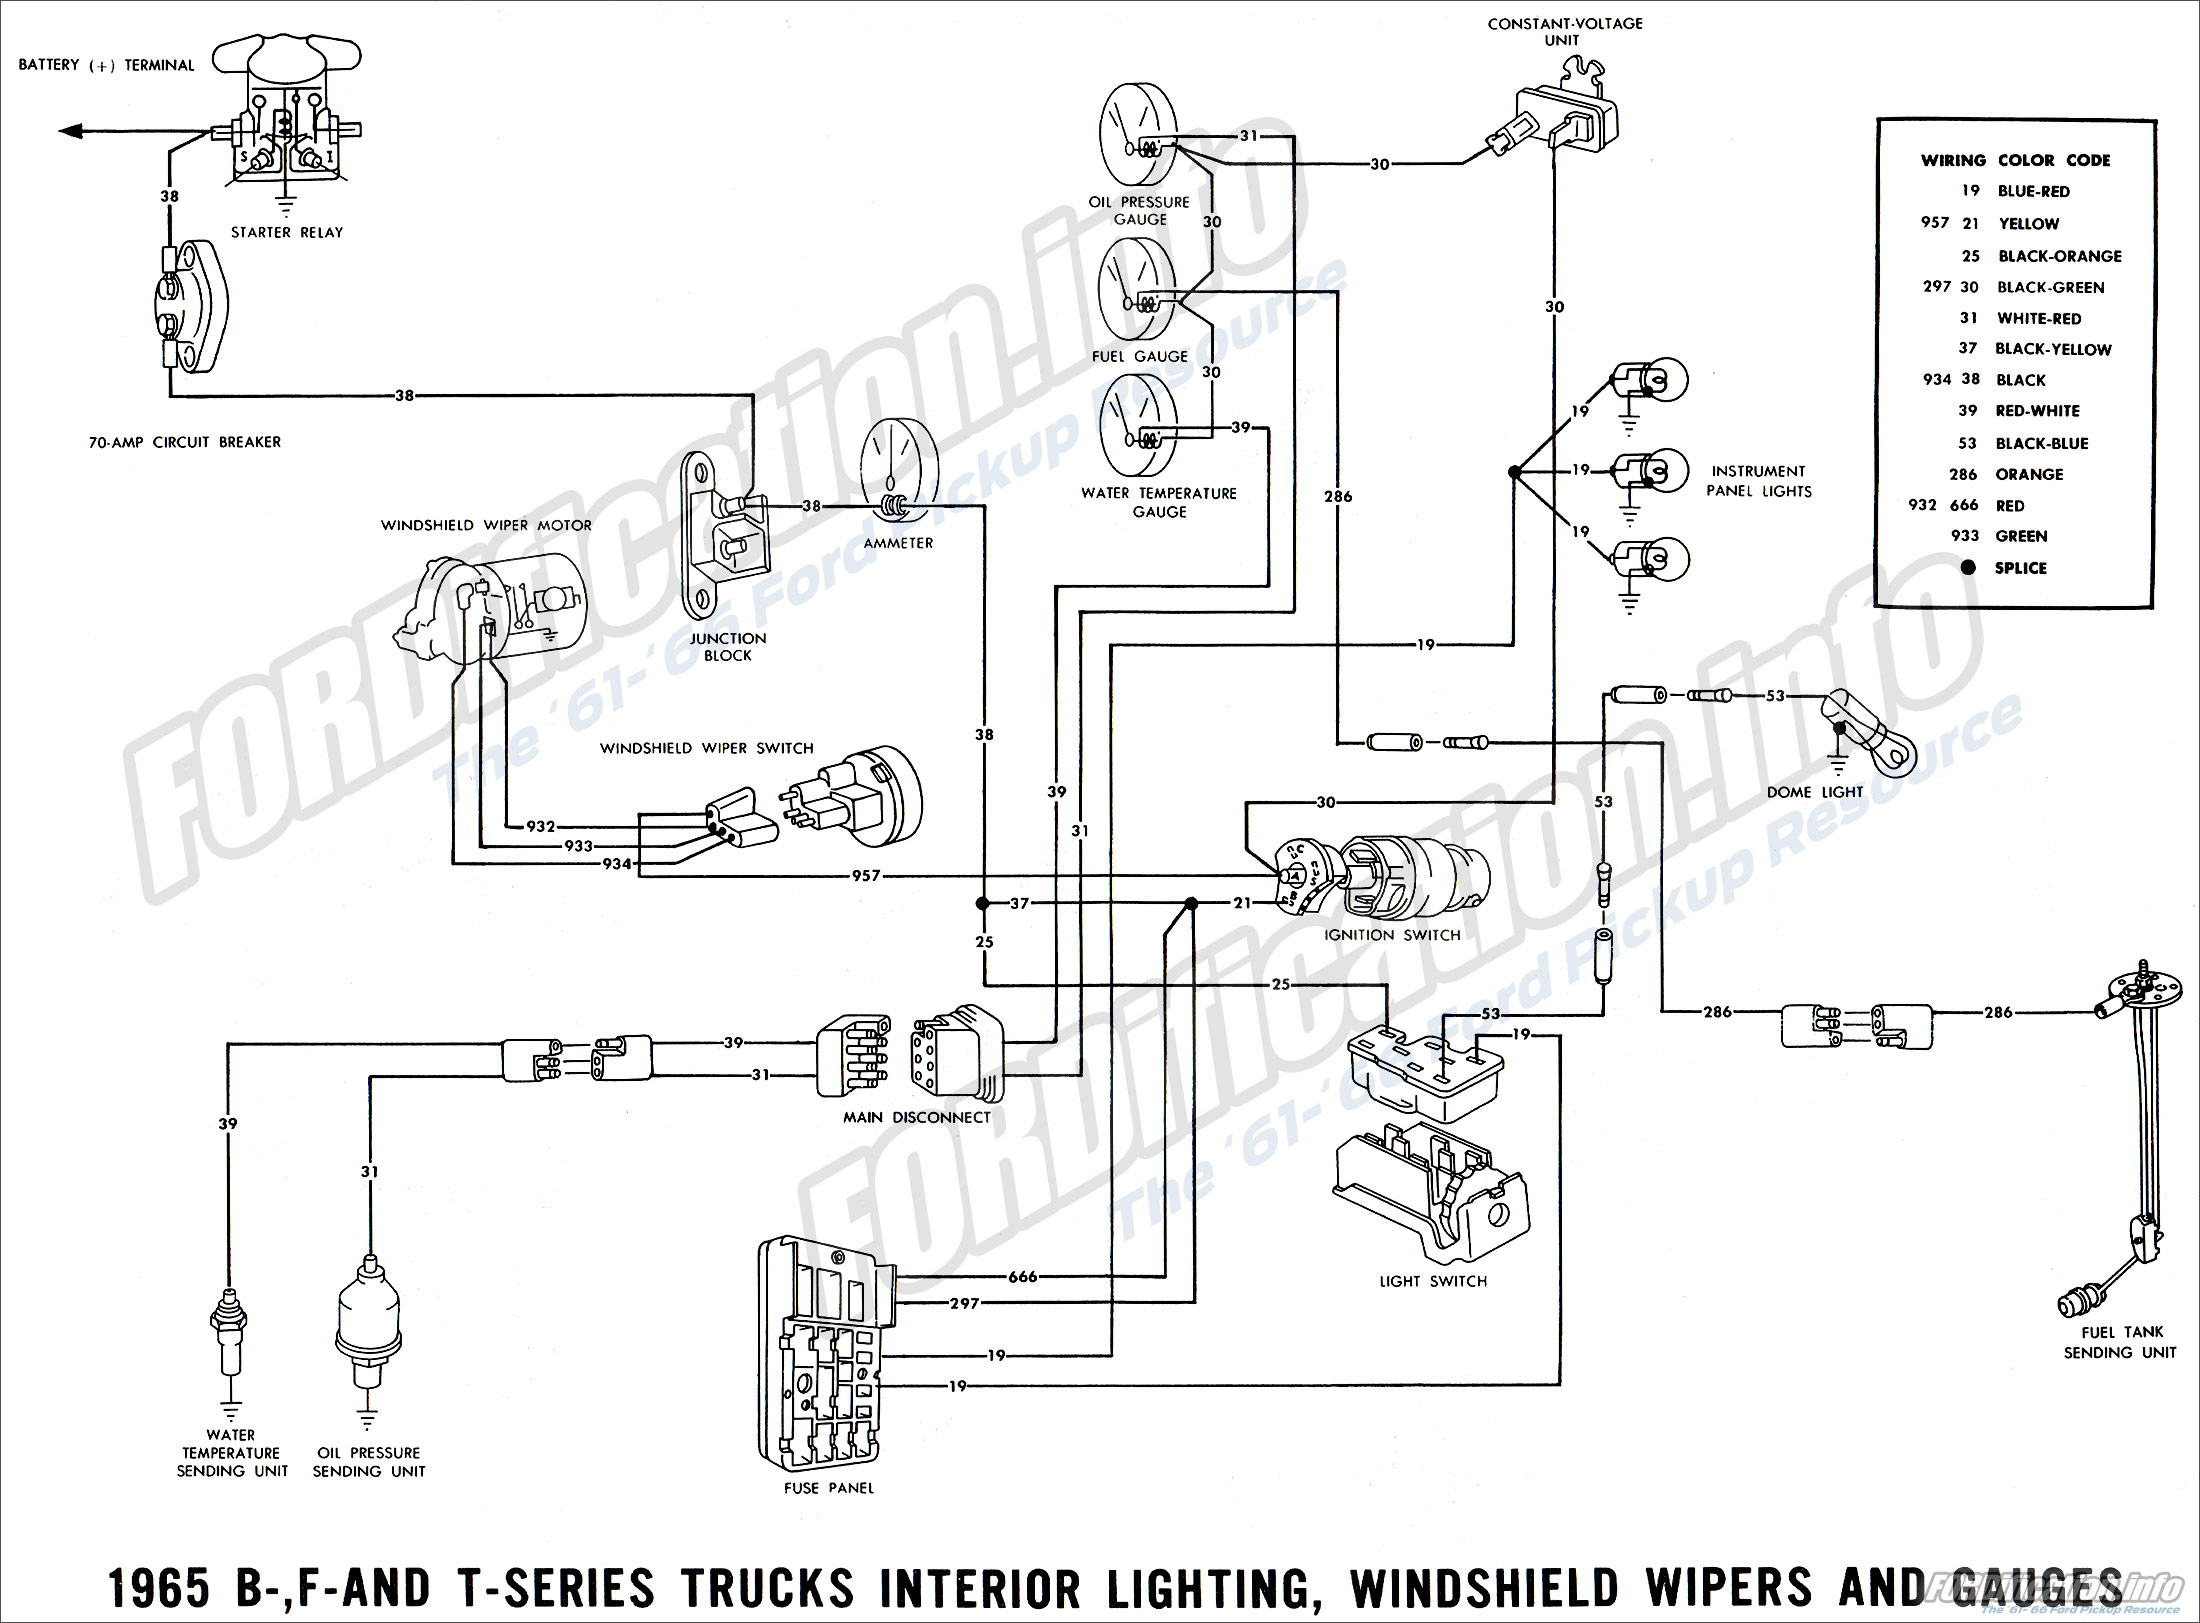 1965 Ford Truck Wiring Diagrams The 61 66 Fuse Diagram B F And T Series Interior Lighting Windshield Wiper Gauges